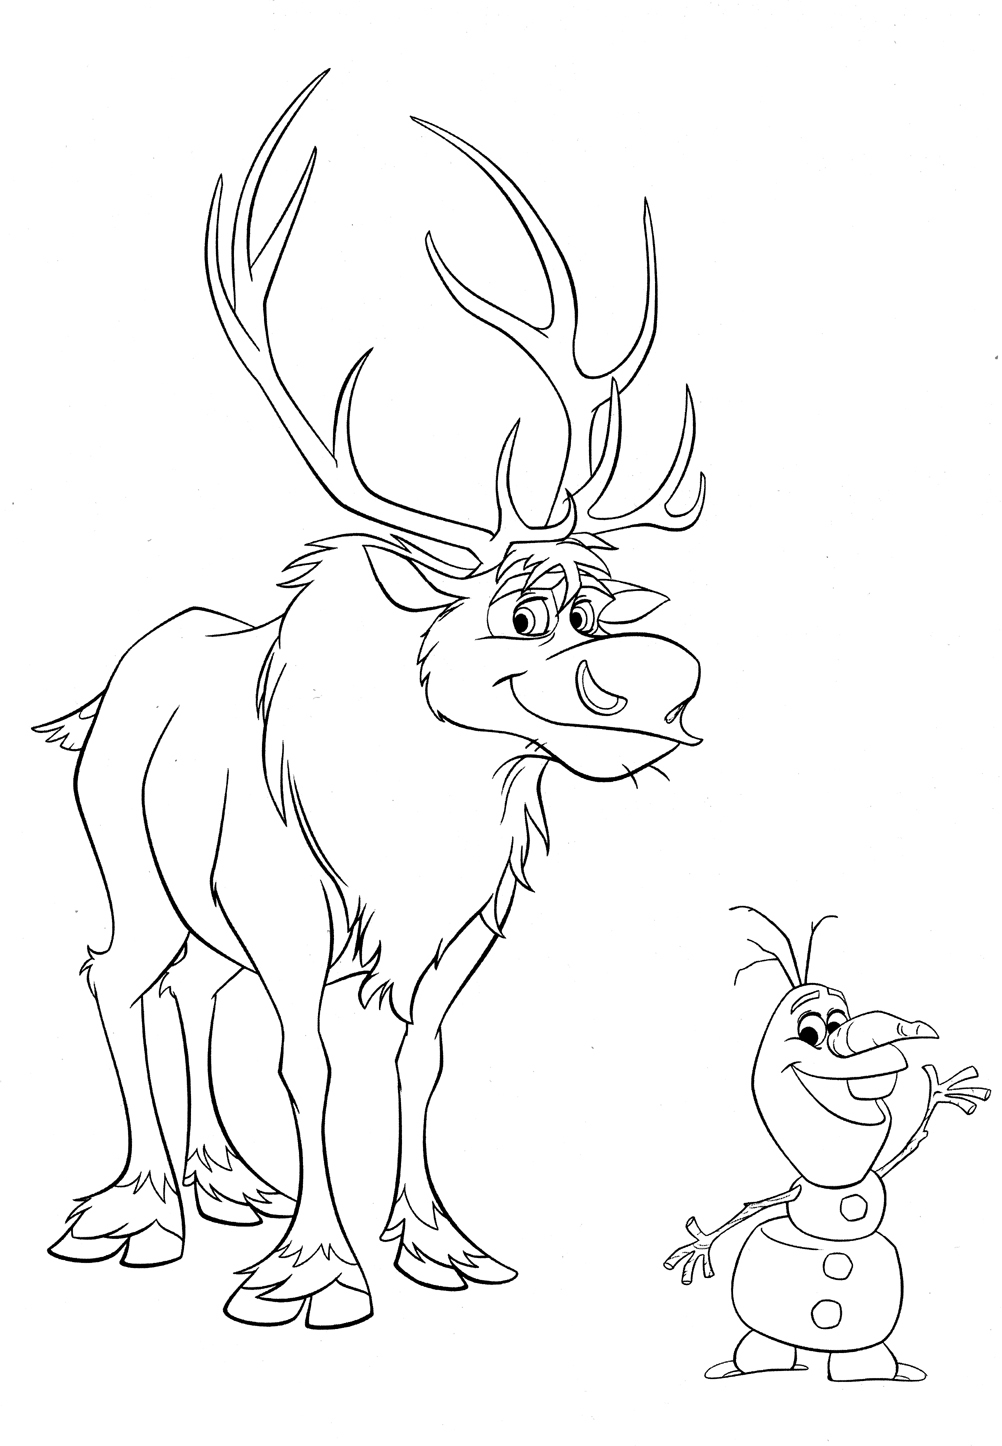 Mario Coloring Pages Online - Olaf Coloring Pages with Sven Coloringstar